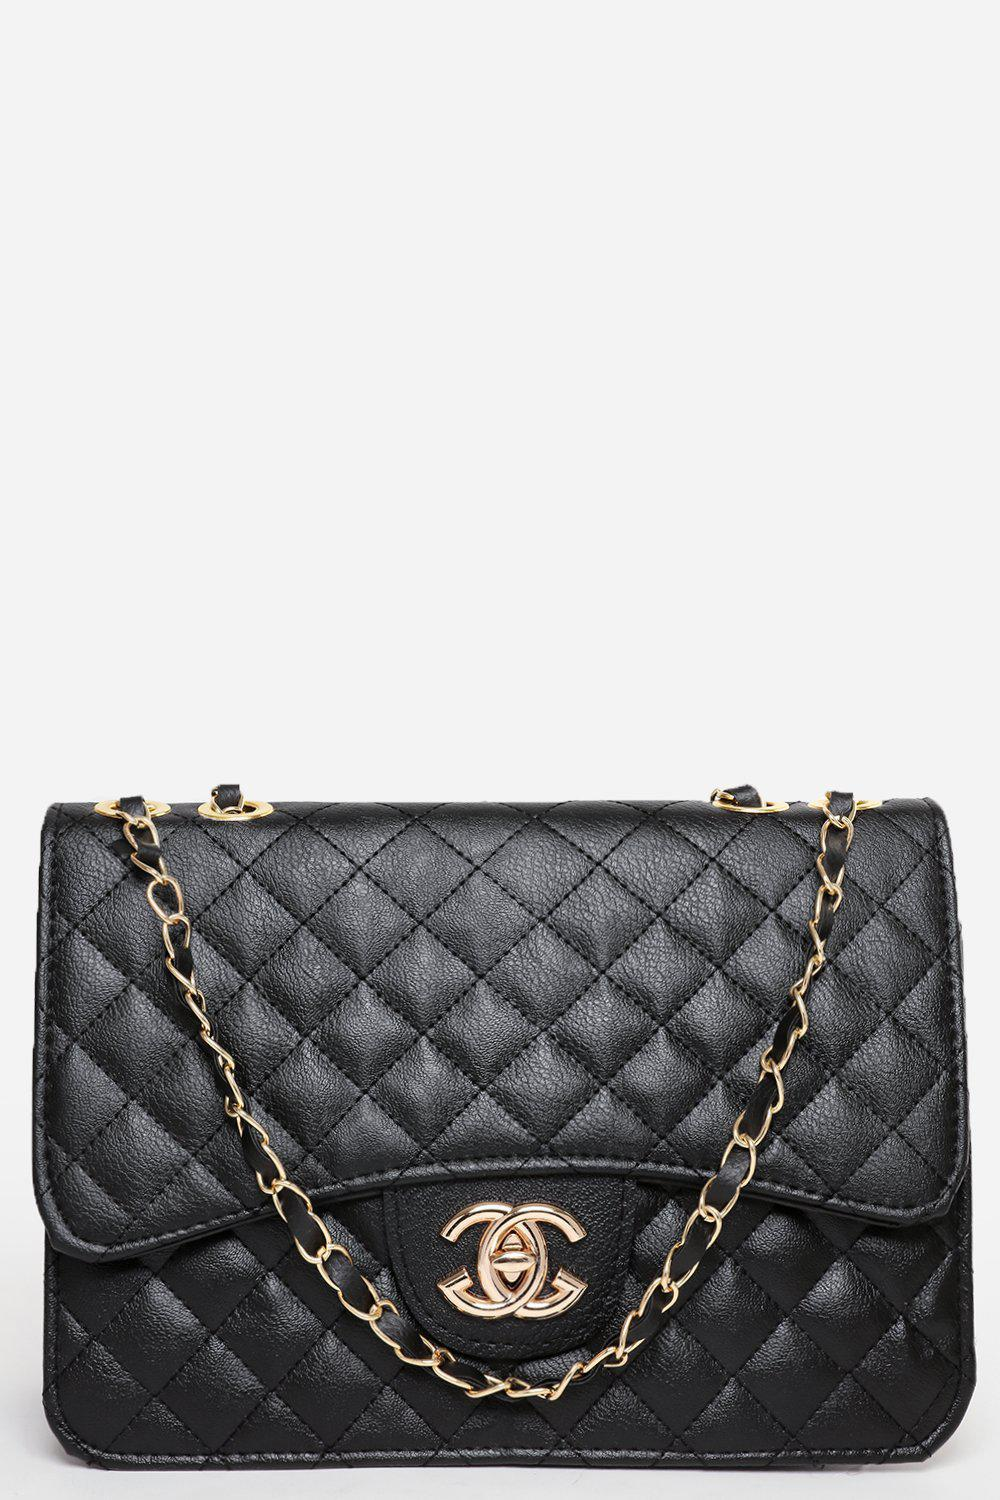 Gold Chain Strap Curved Flap Quilted Black Handbag